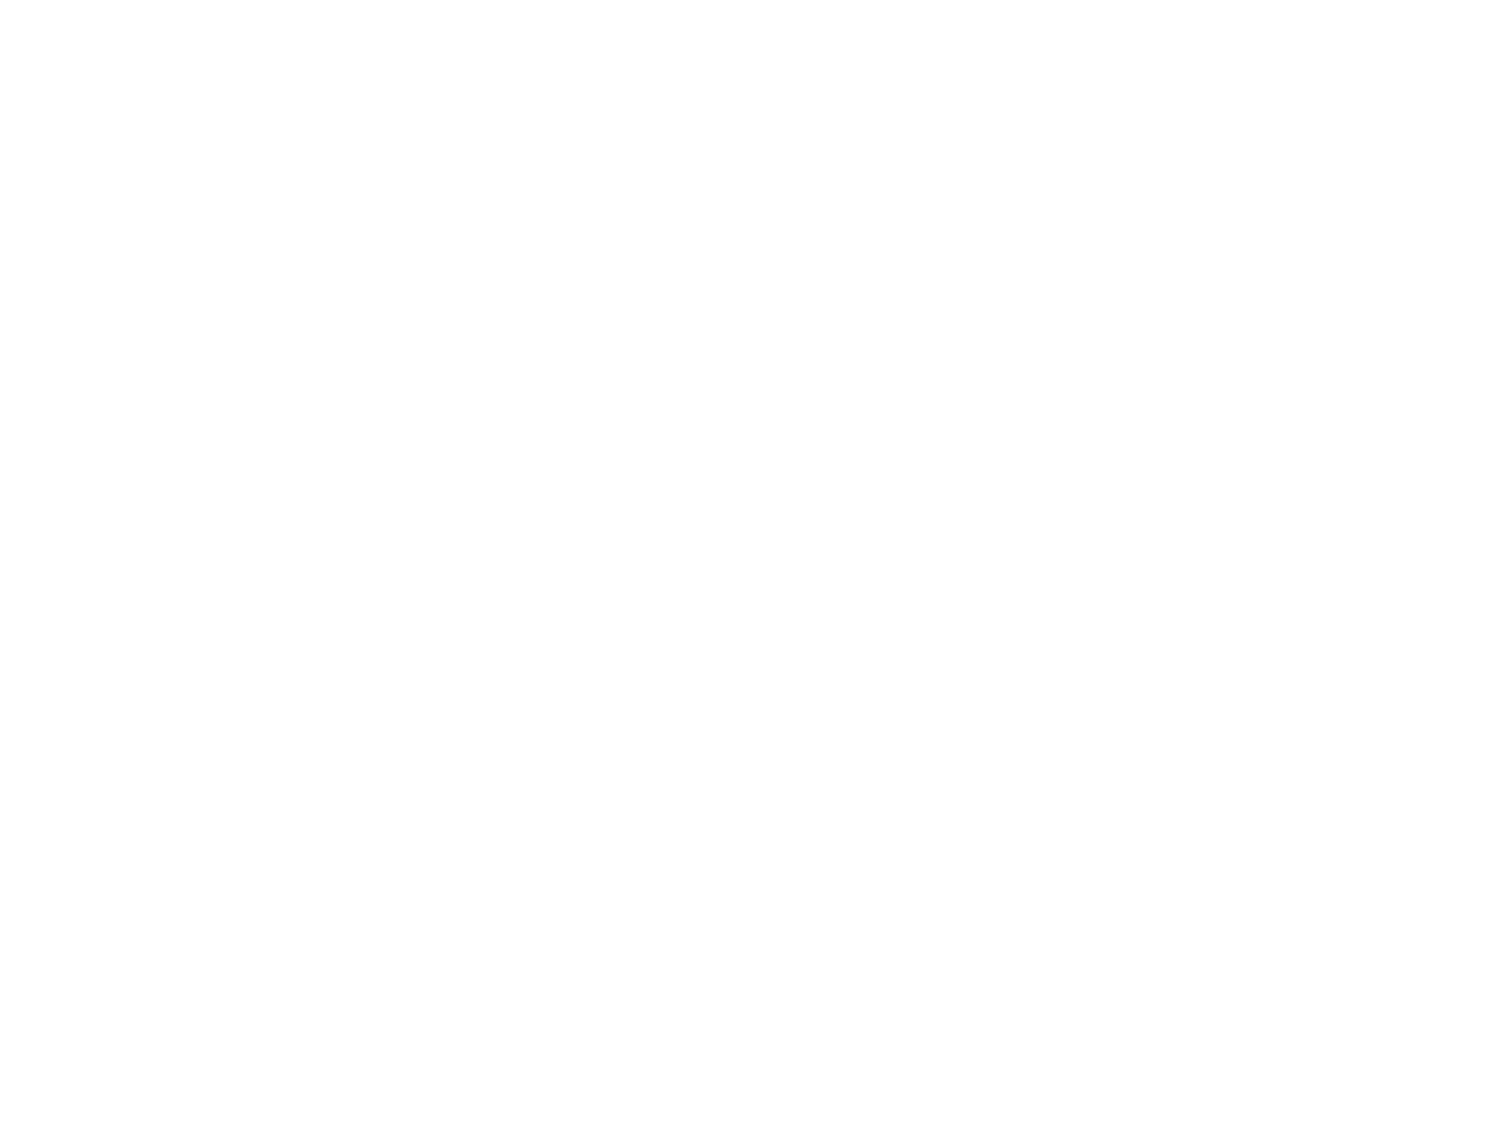 Center for Psychotherapy, Spirituality & Creativity